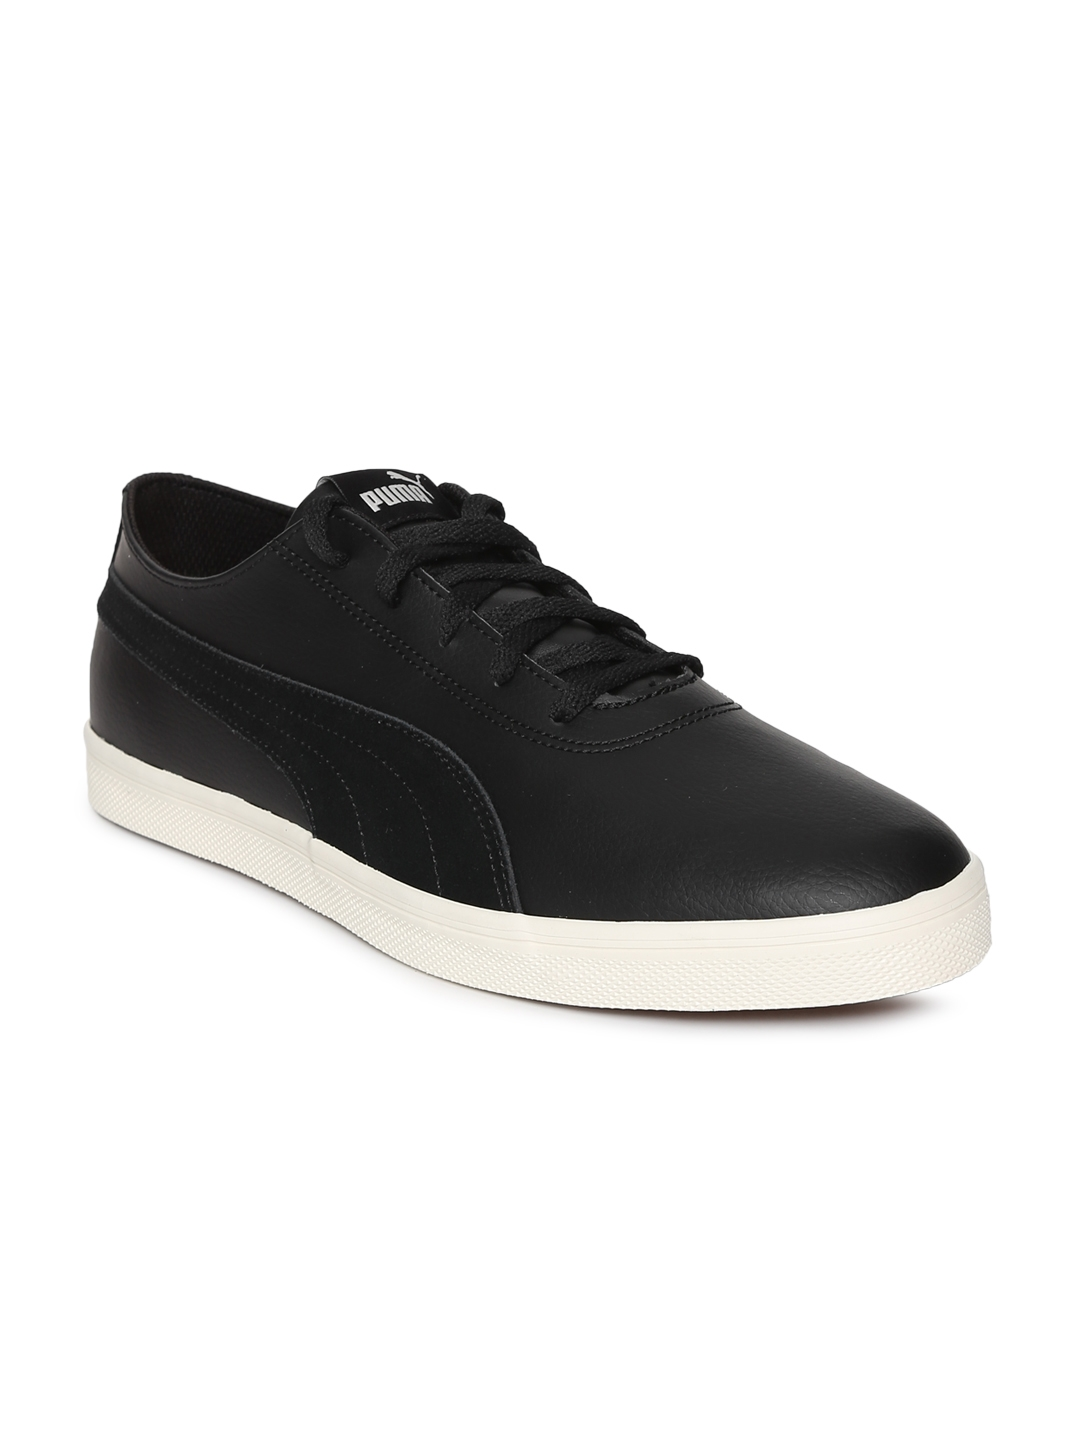 3746ec6f026ac7 Buy Pume Men Black Urban SL SD Sneakers - Casual Shoes for Men ...